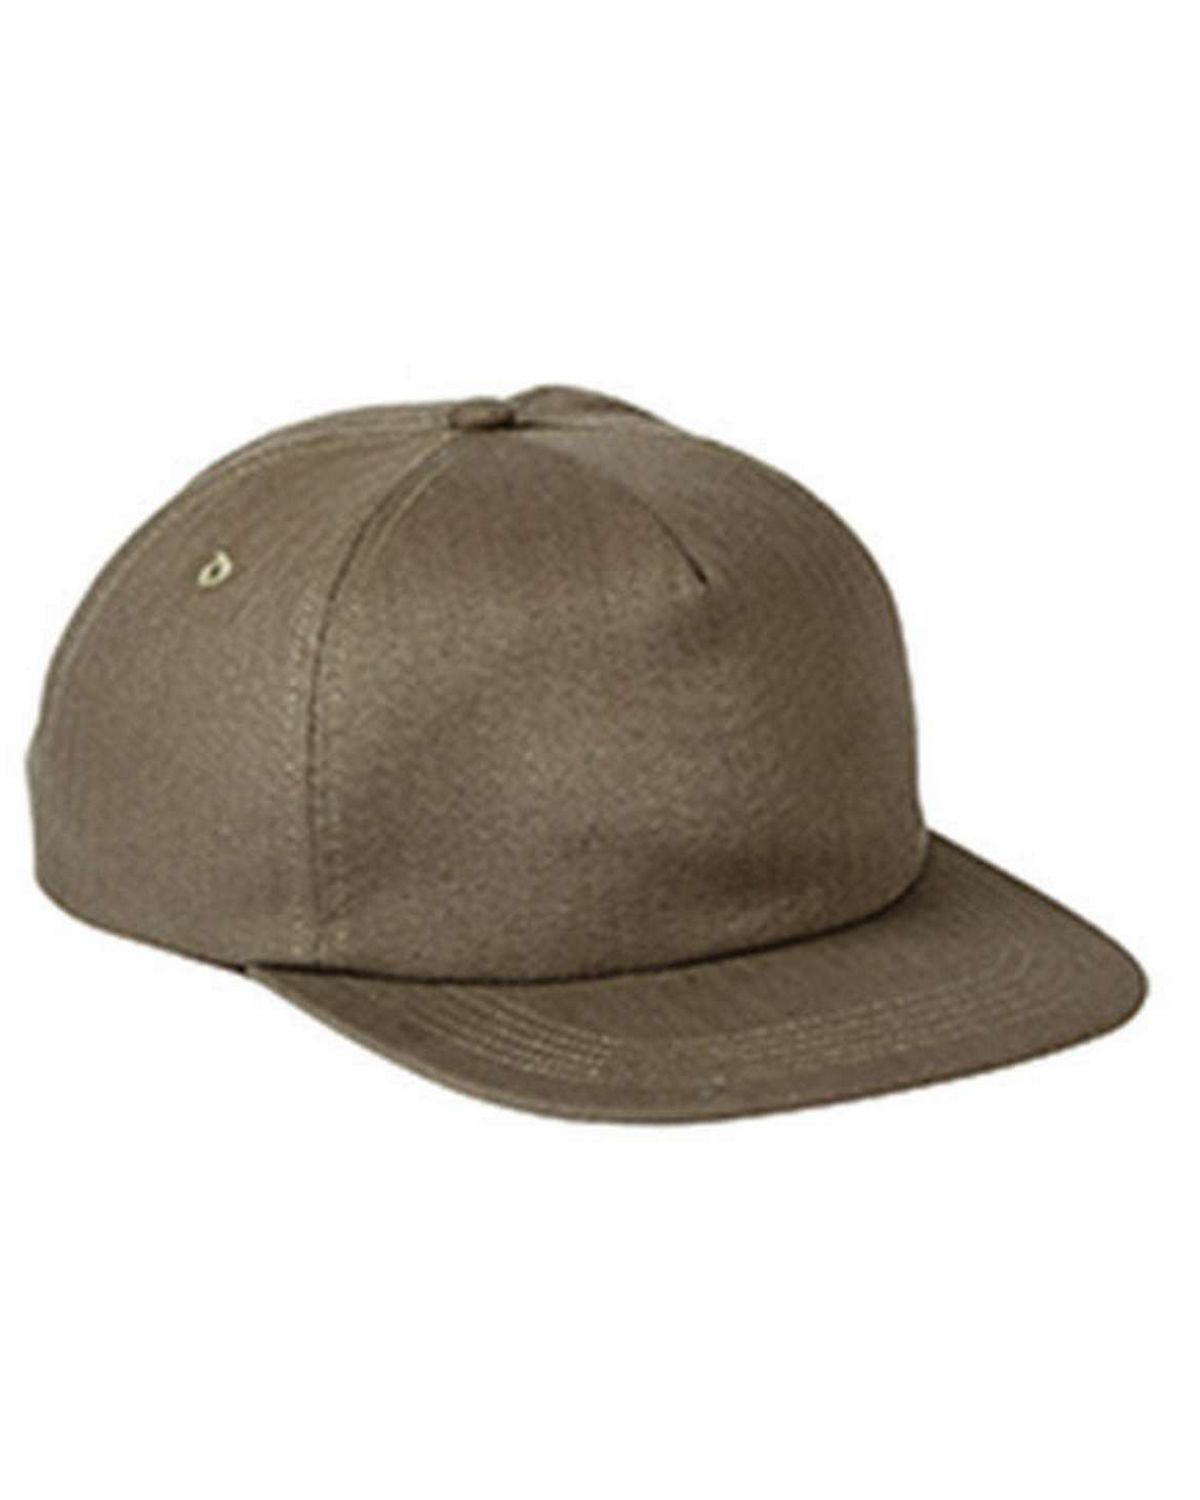 Big Accessories BA615 Squatty Herringbone Cap